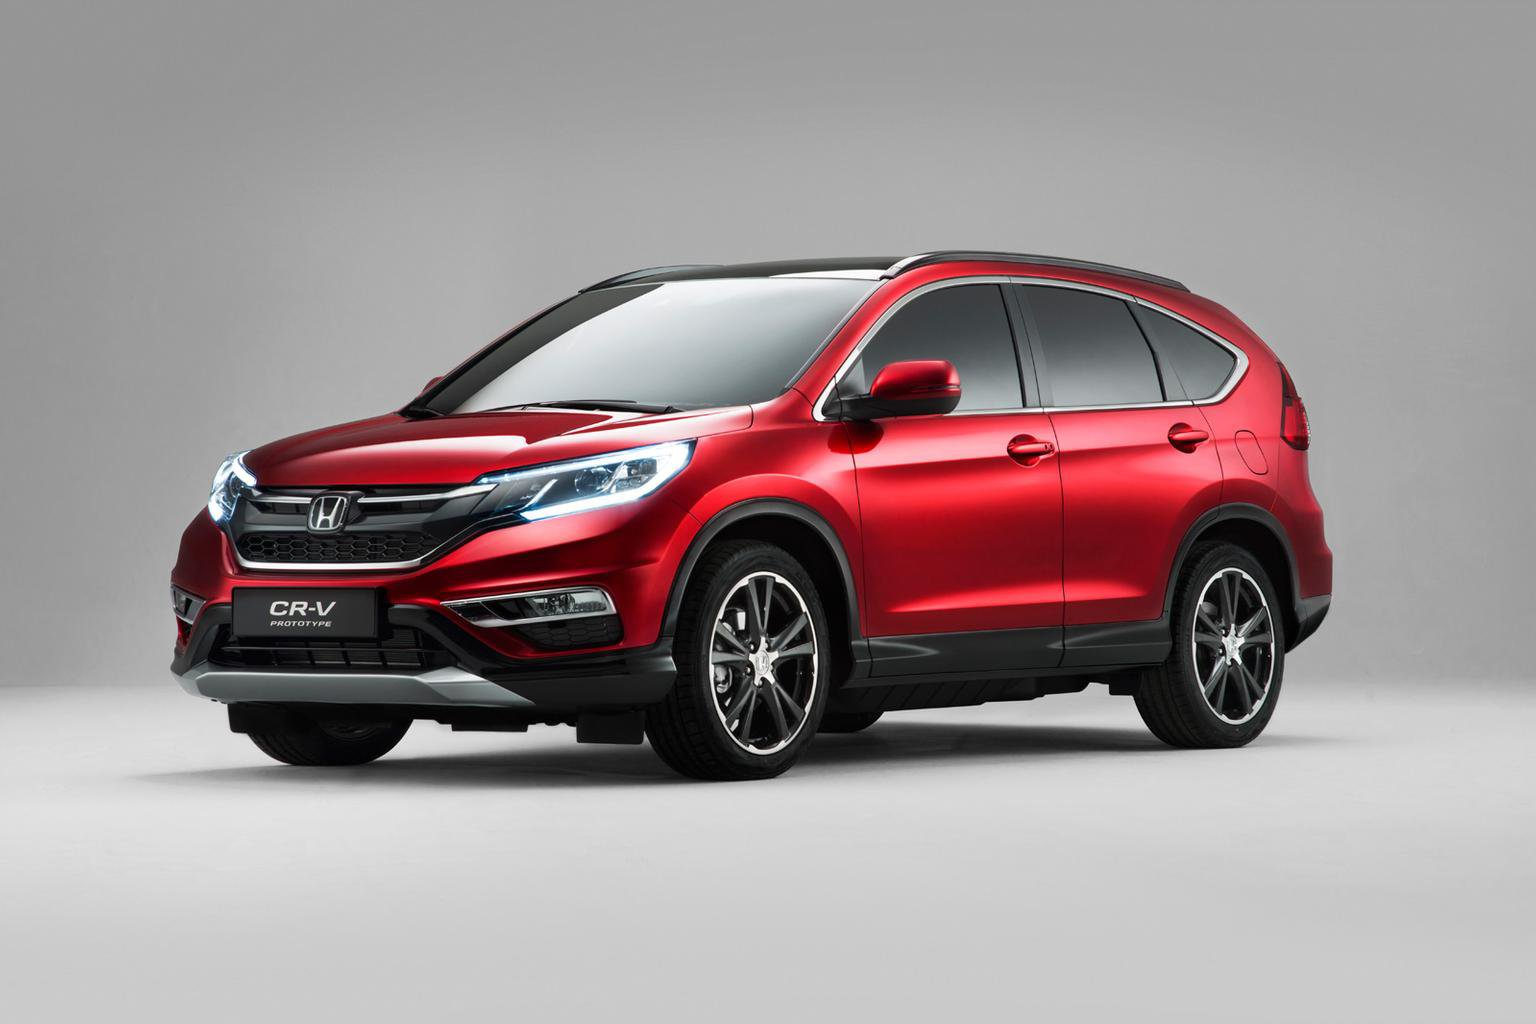 2015 Honda CR-V face-lift - prices, specs and on-sale date